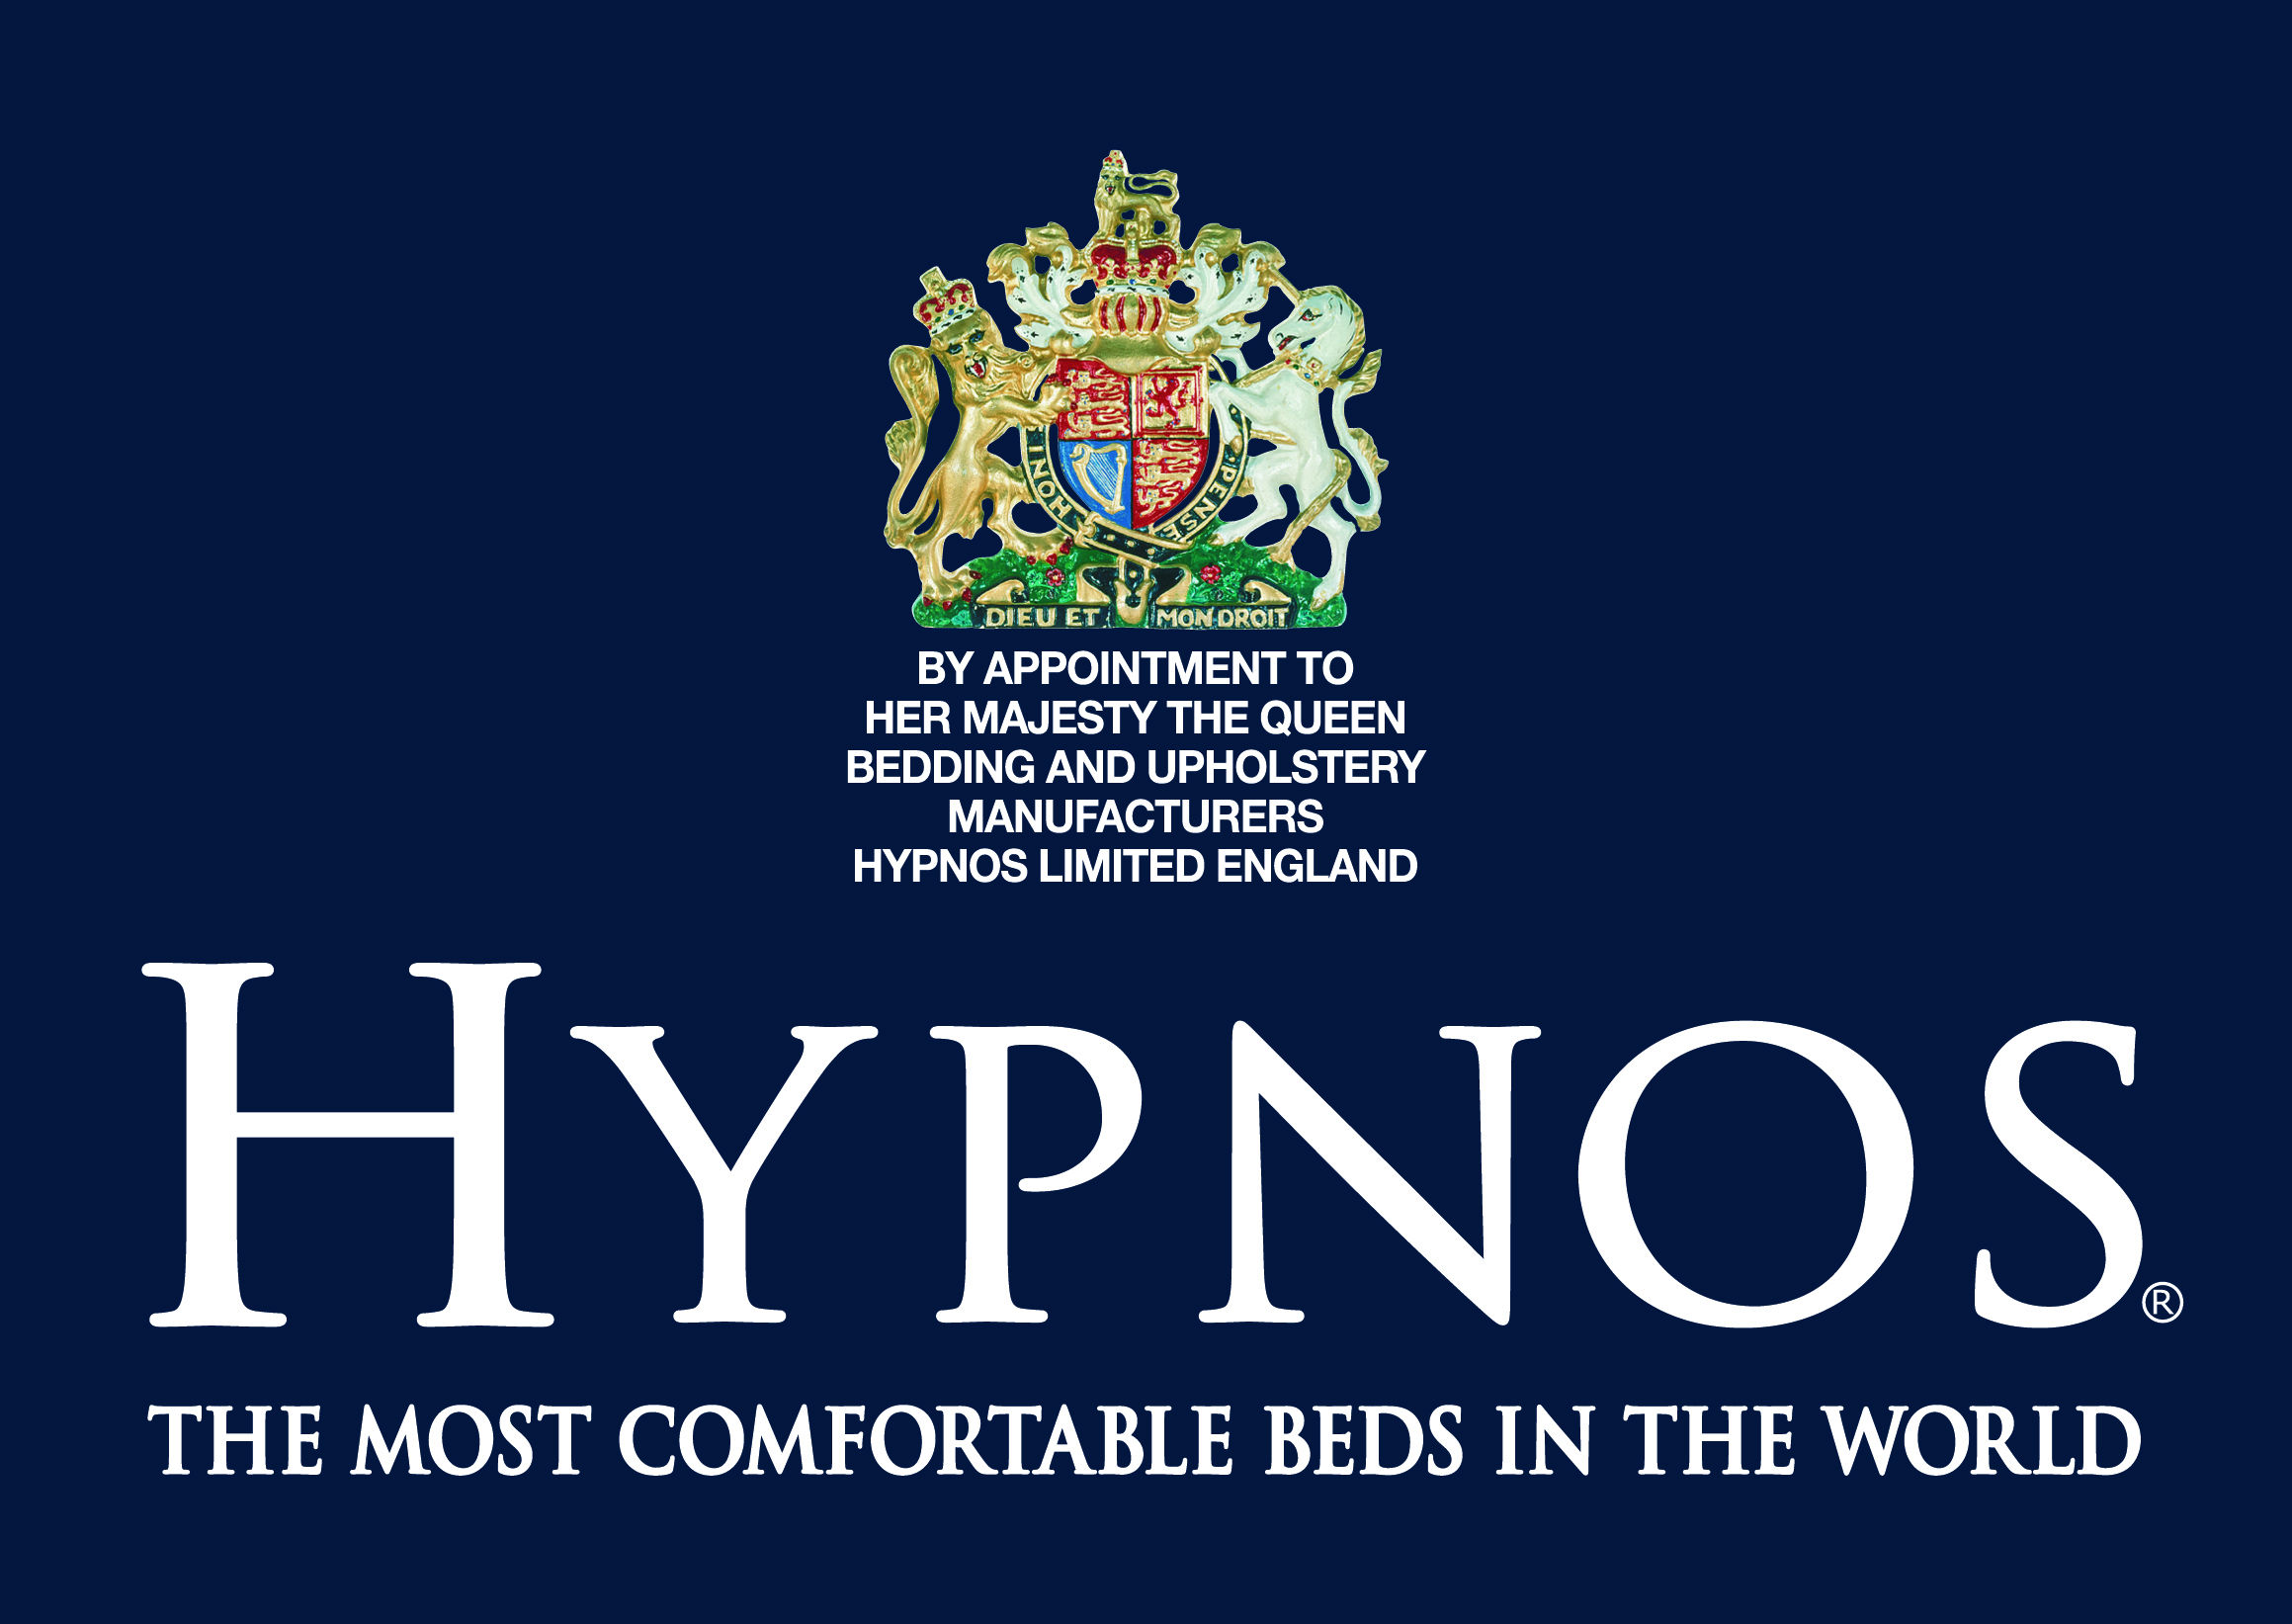 Hypnos beds